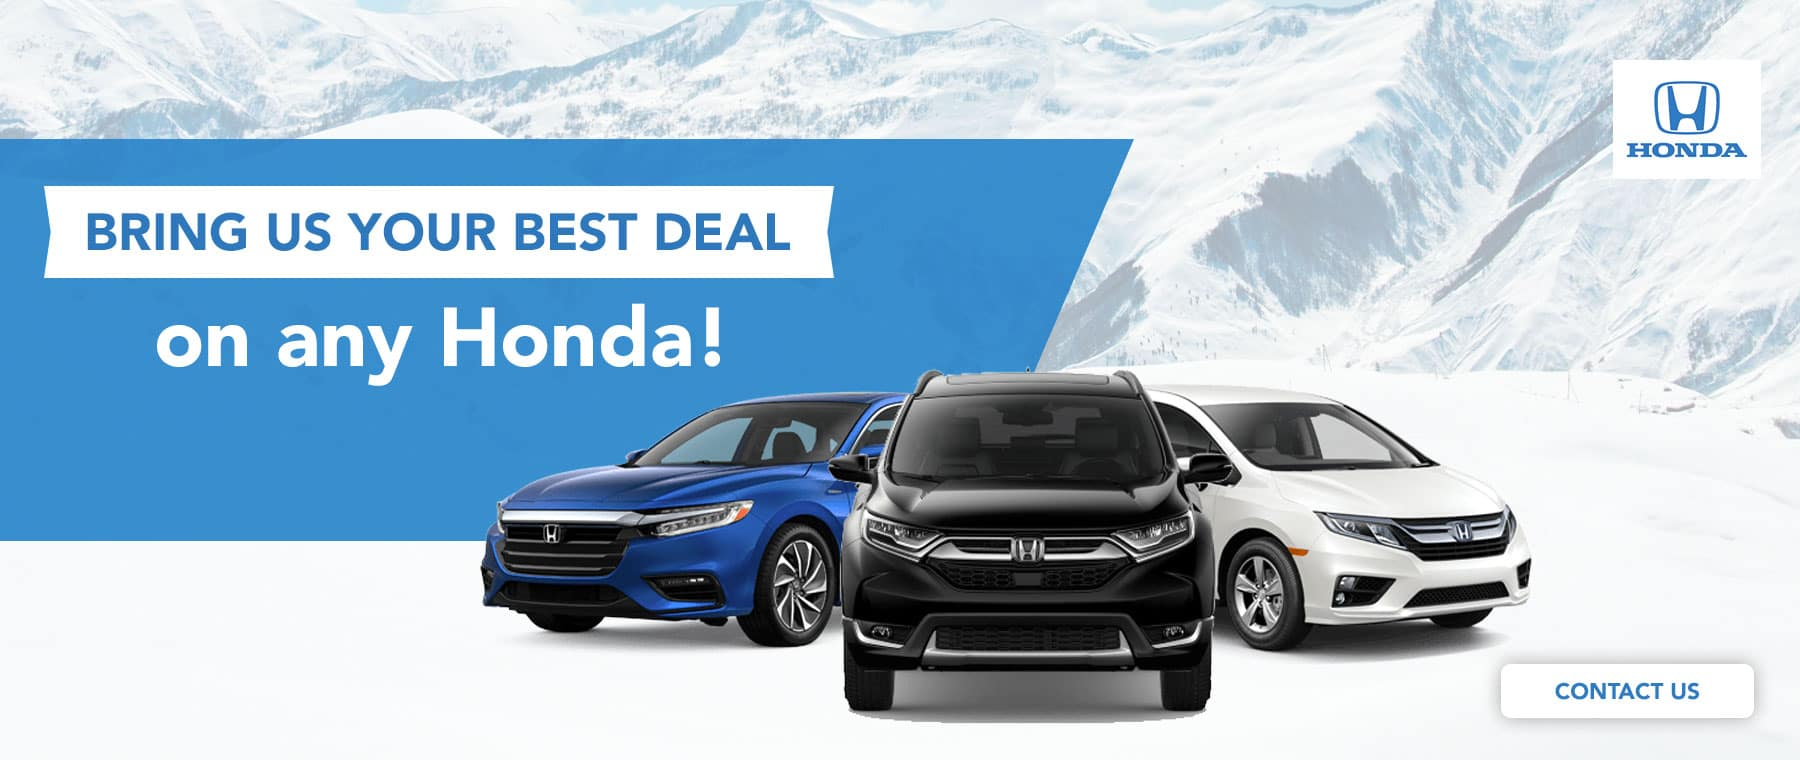 Bring Us Your Best Deal